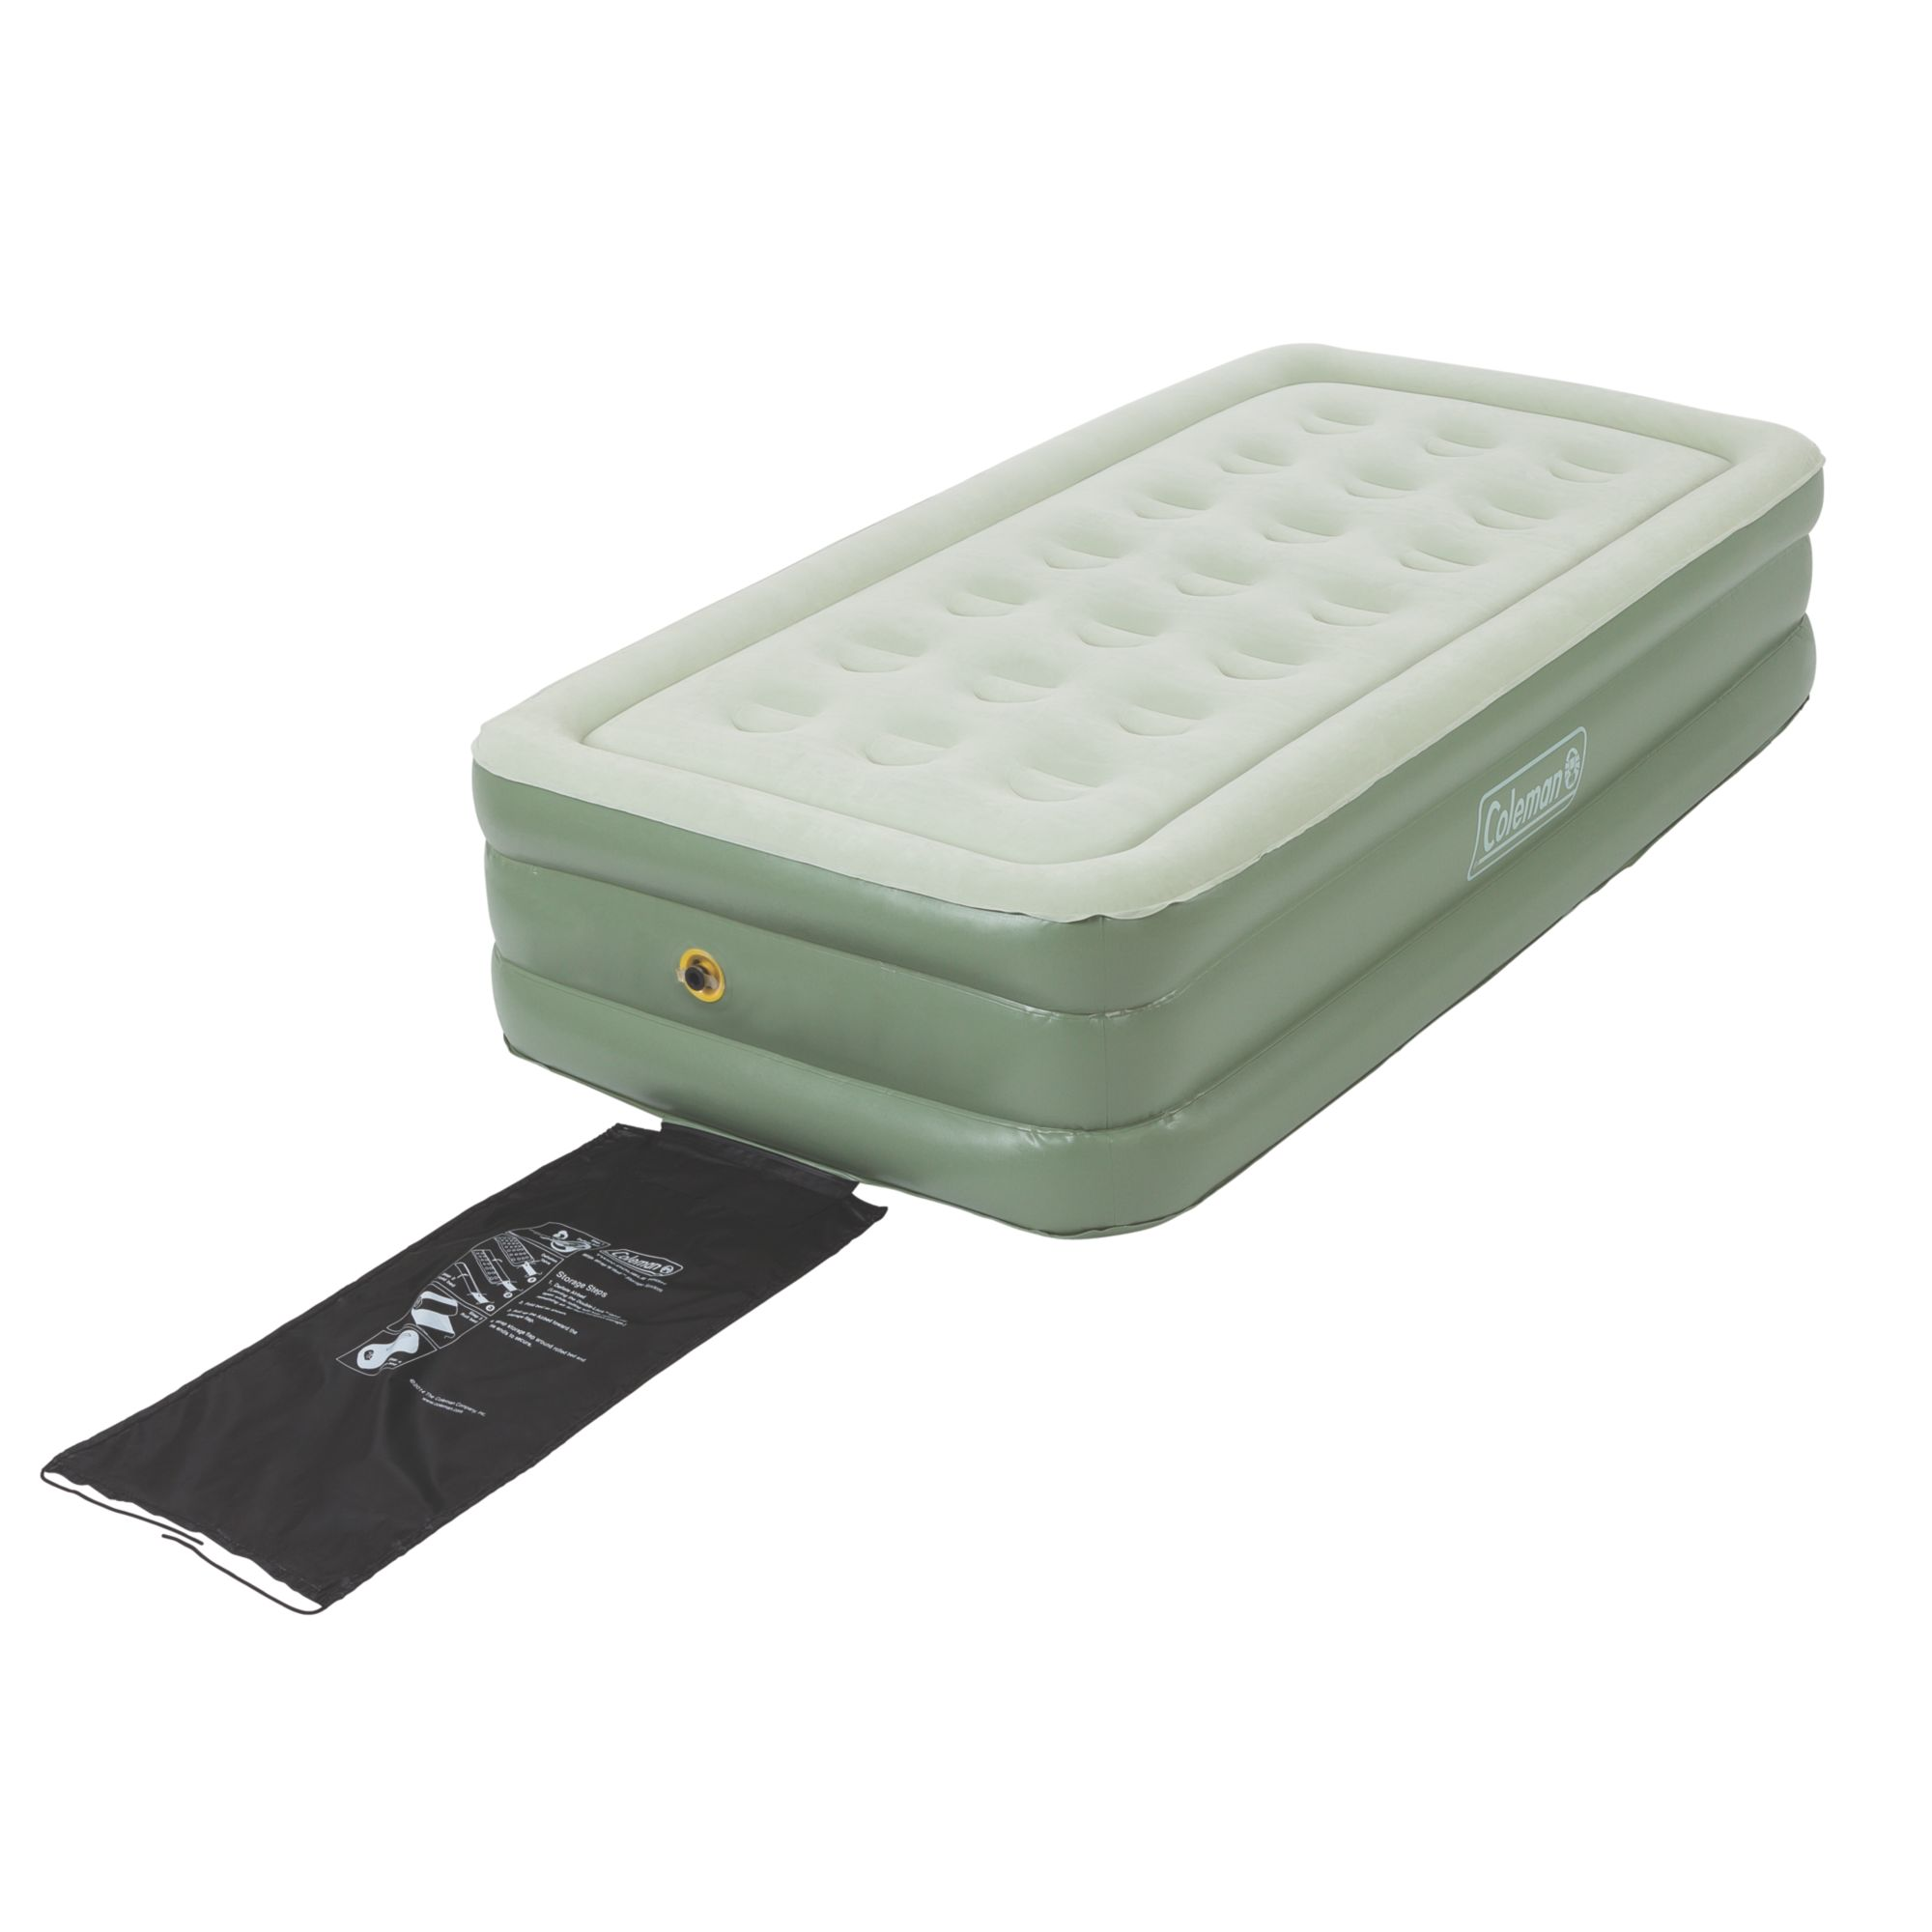 Supportrest Double High Airbed Twin